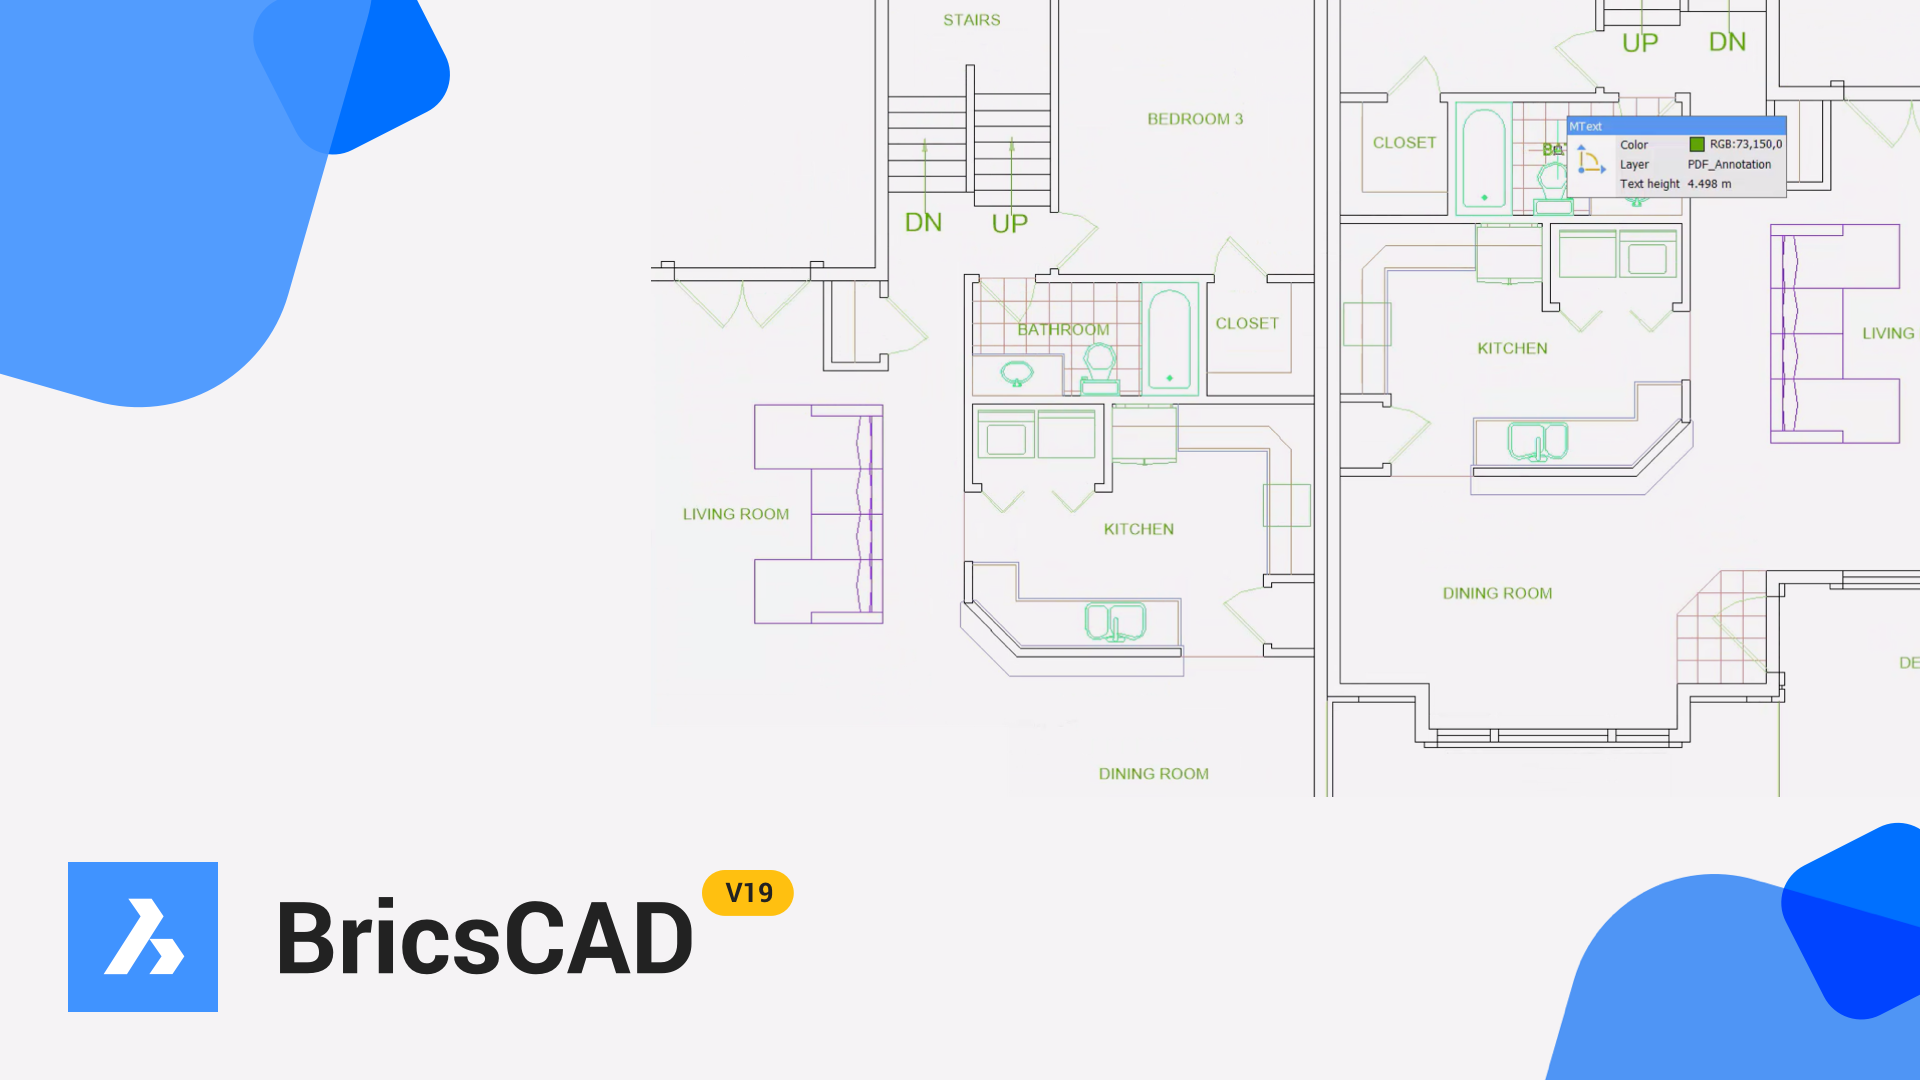 What's New in BricsCAD® V19?